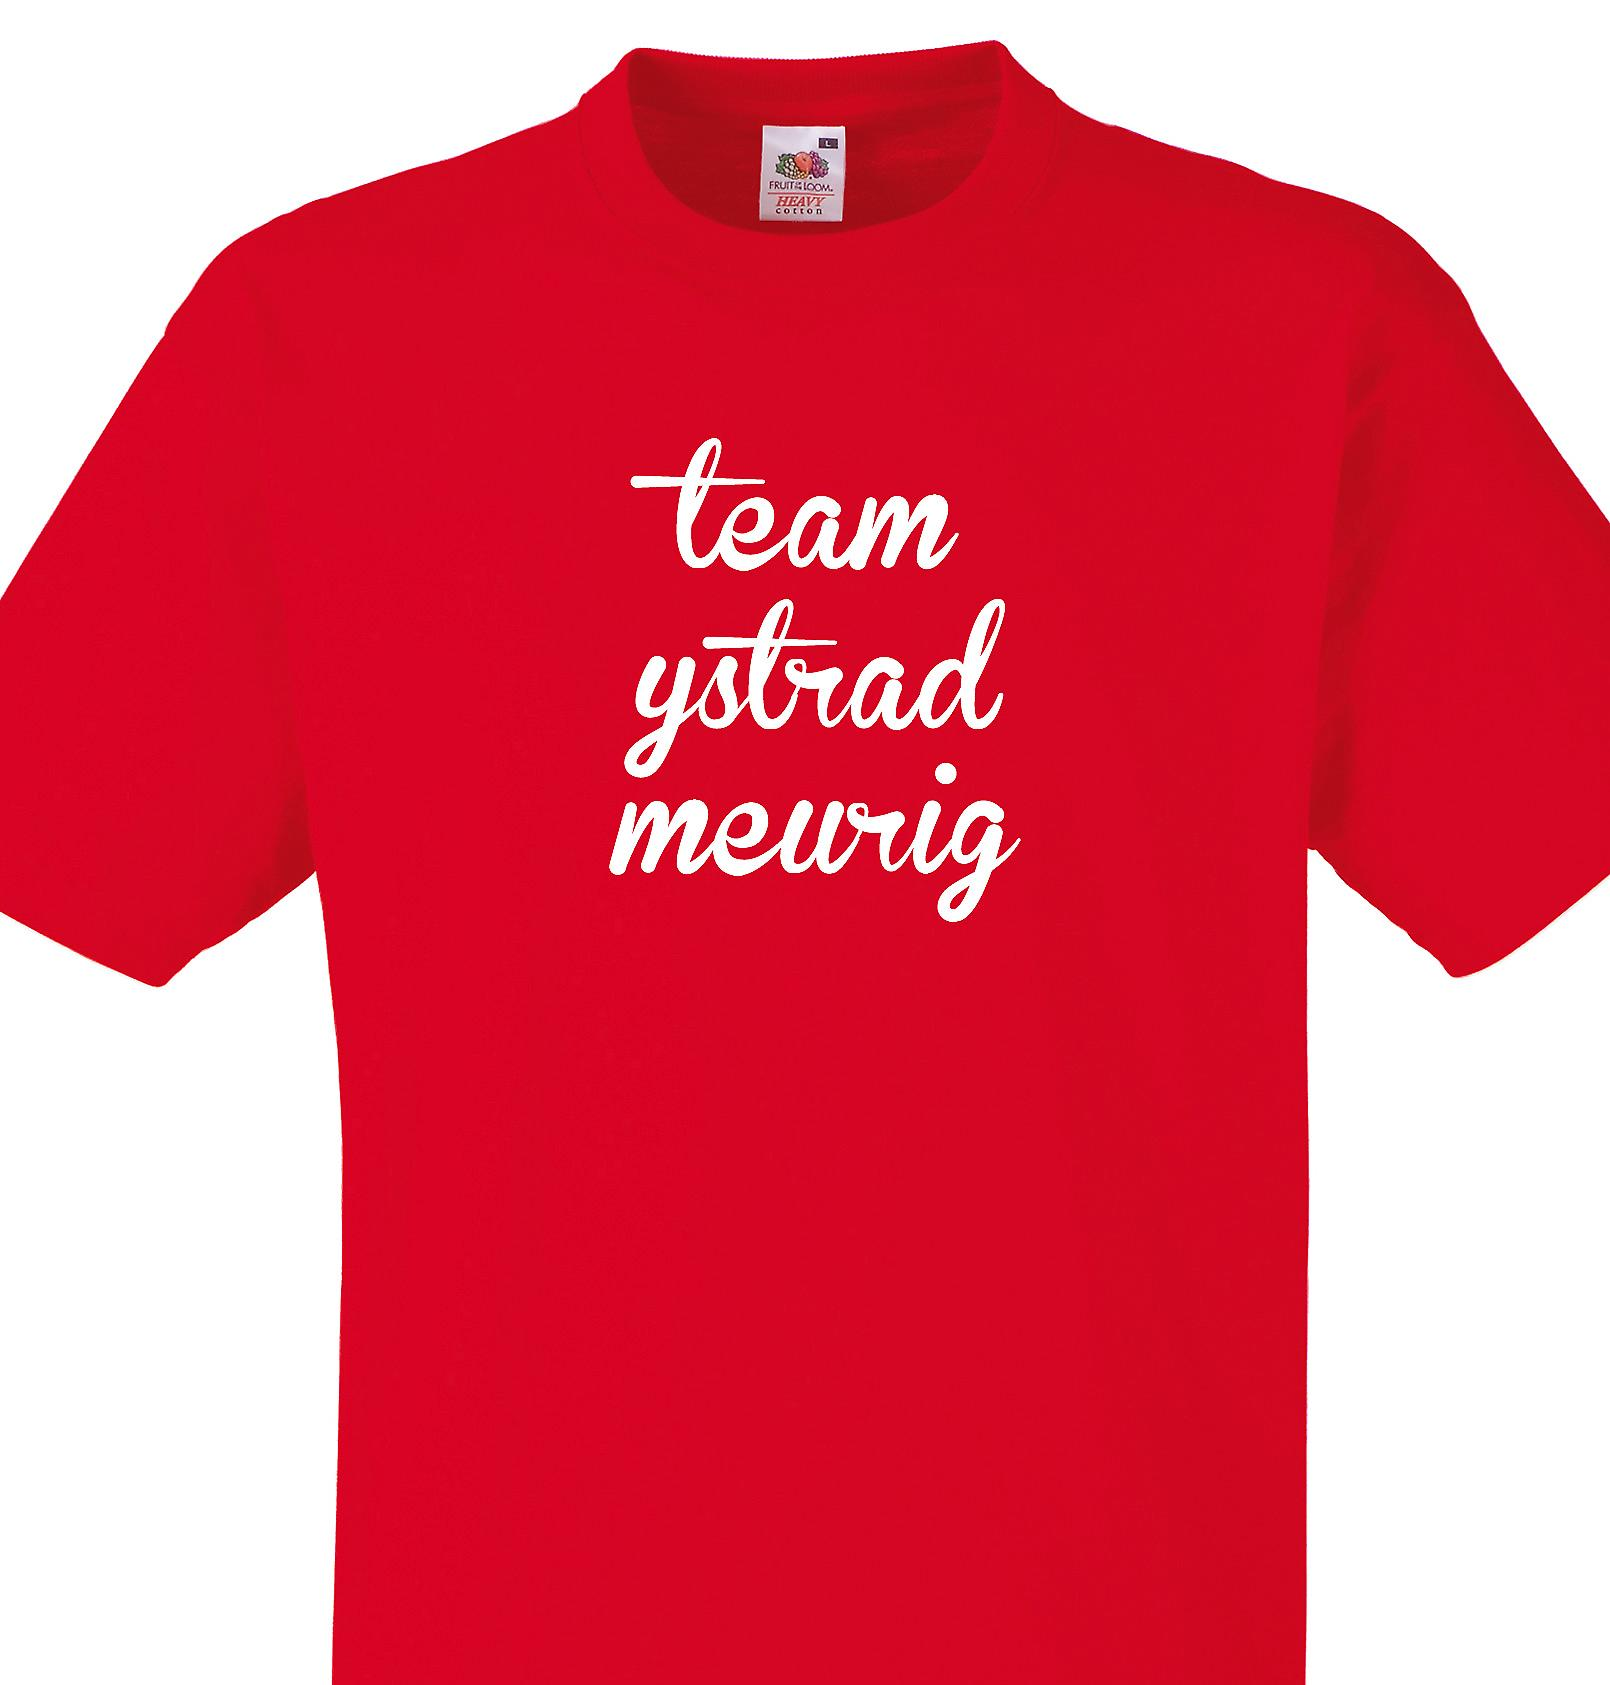 Team Ystrad meurig Red T shirt